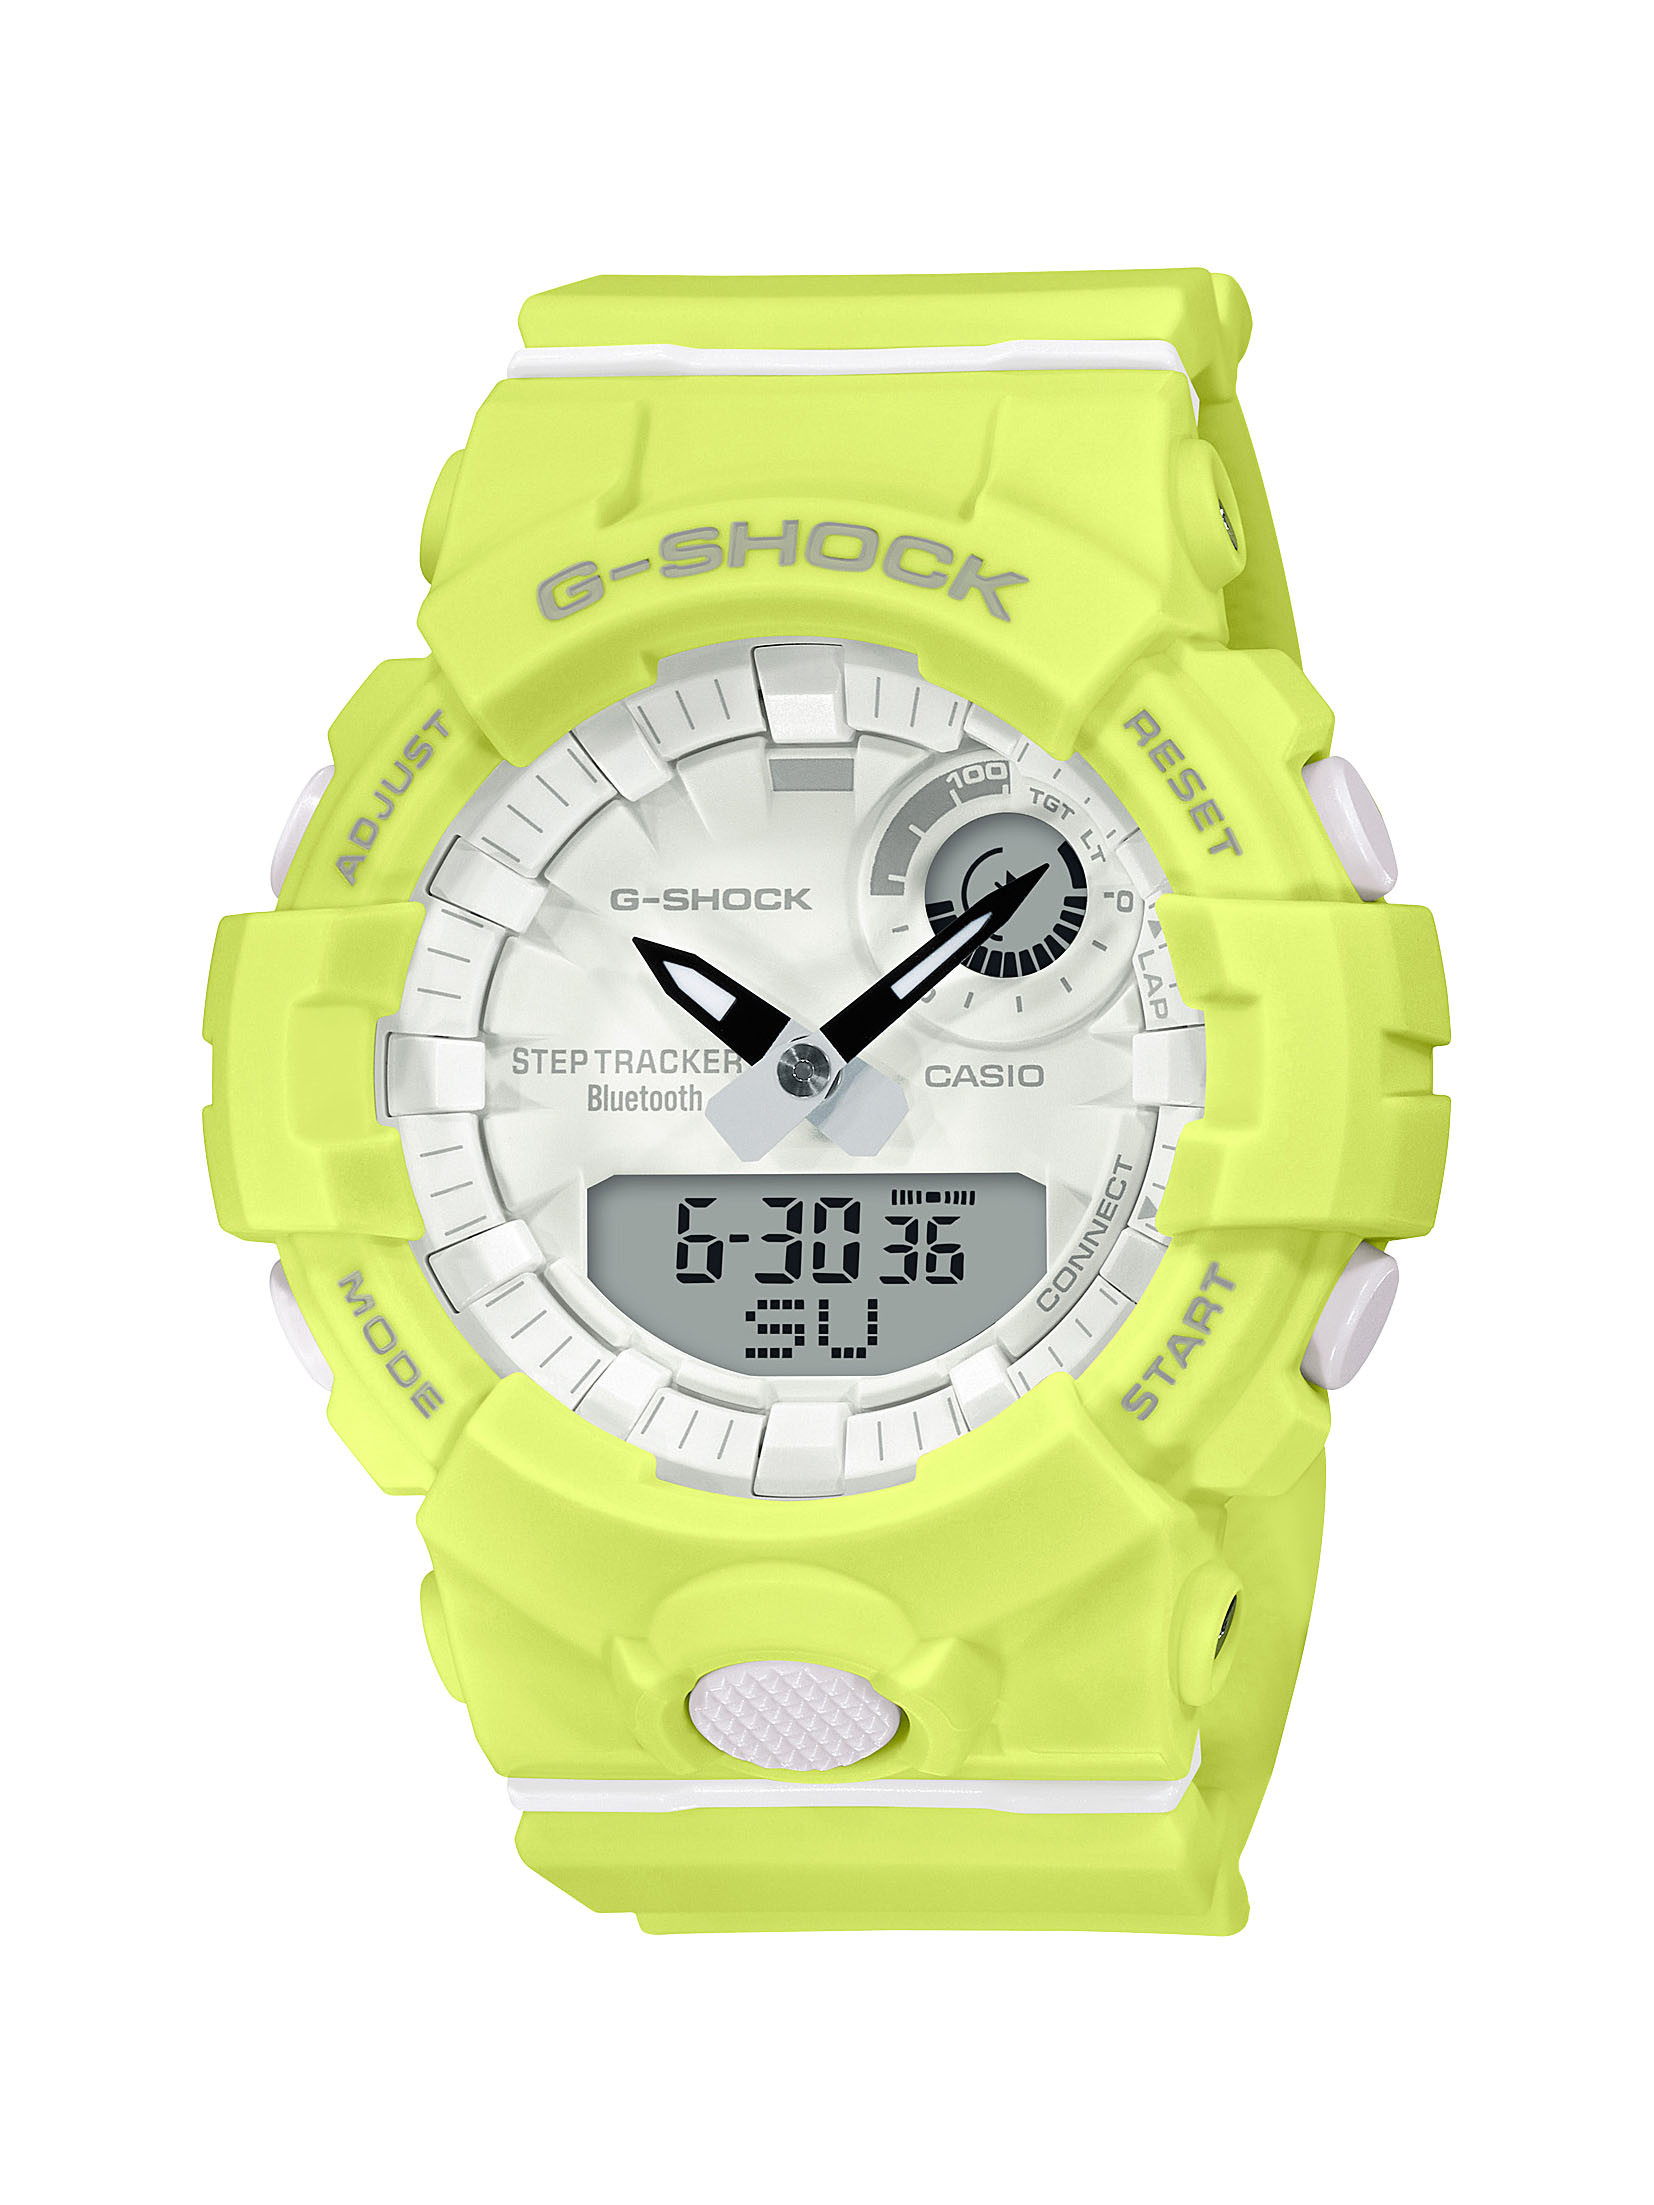 G-SHOCK S-Series Analog Digital Yellow and White Watch